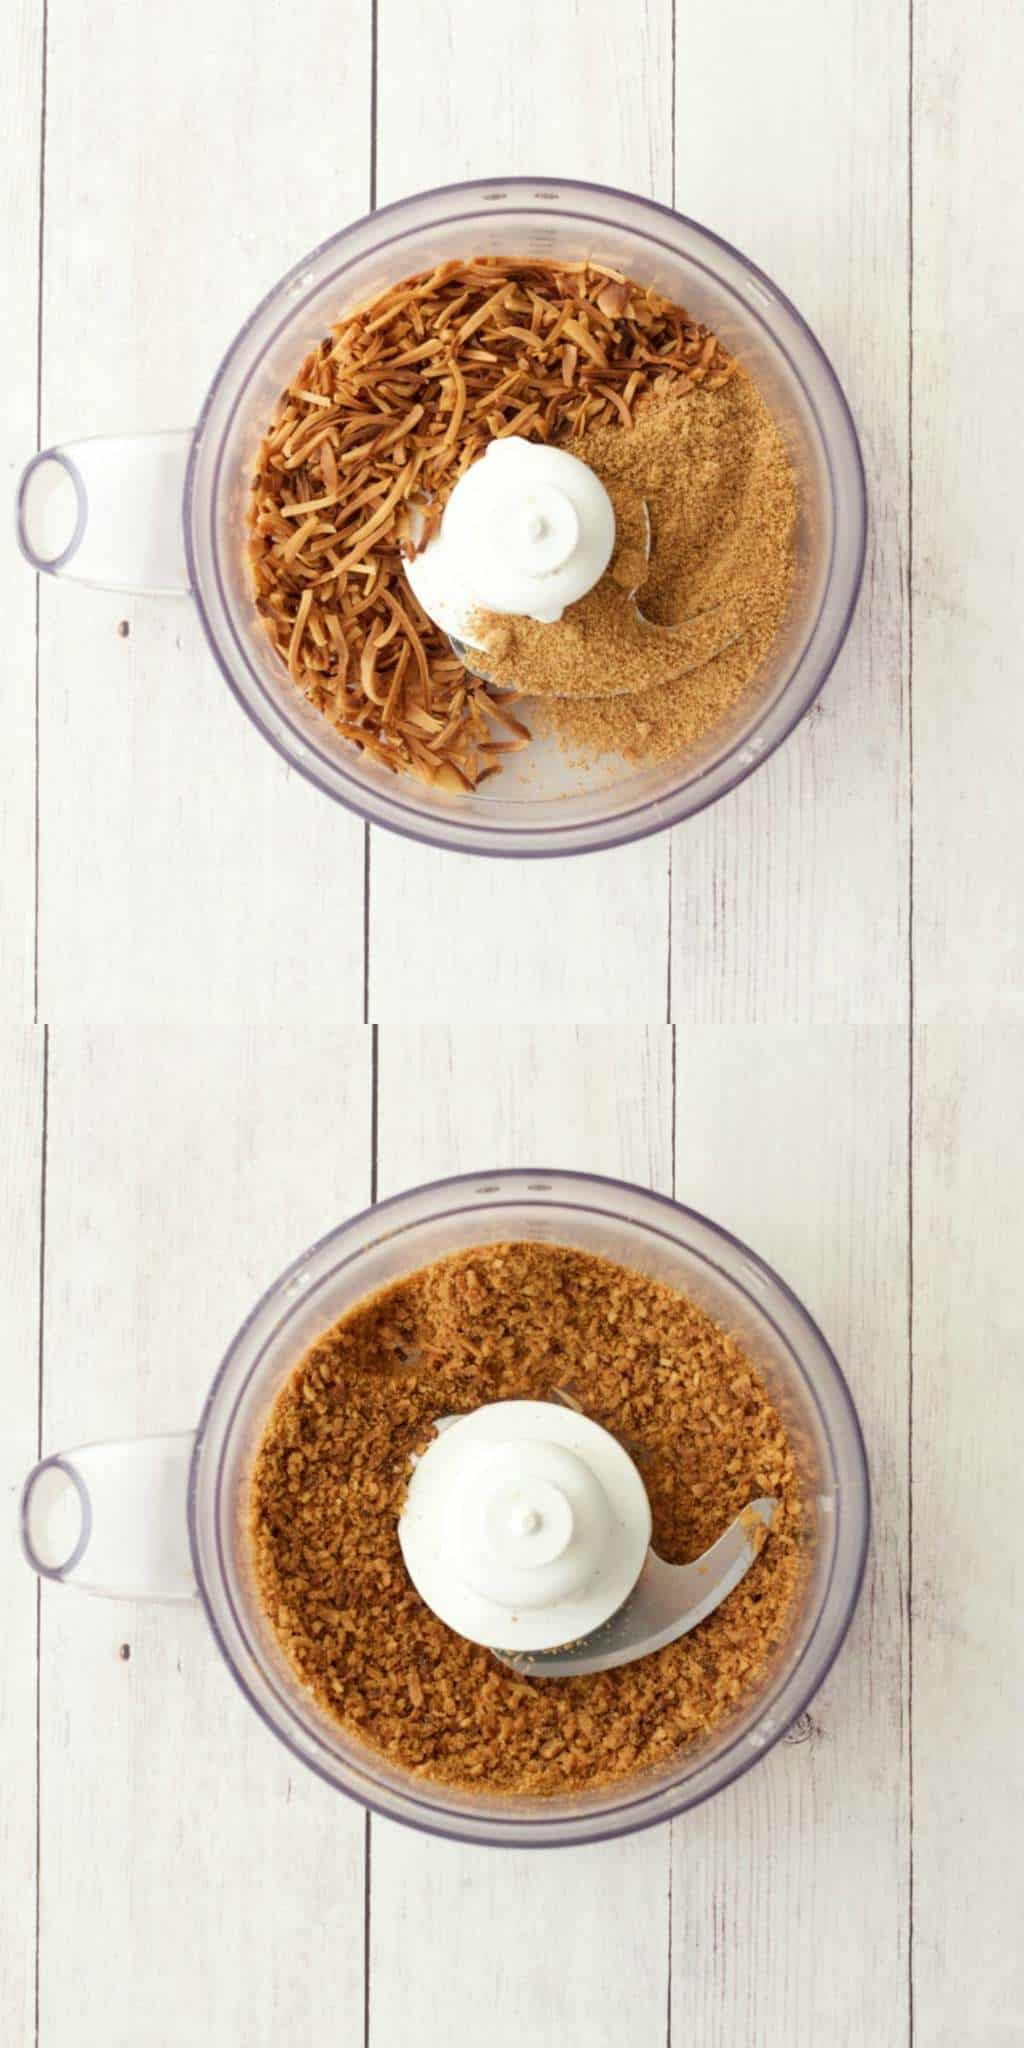 How To Make Toasted Coconut Topping #vegan #lovingitvegan #toasted #coconut